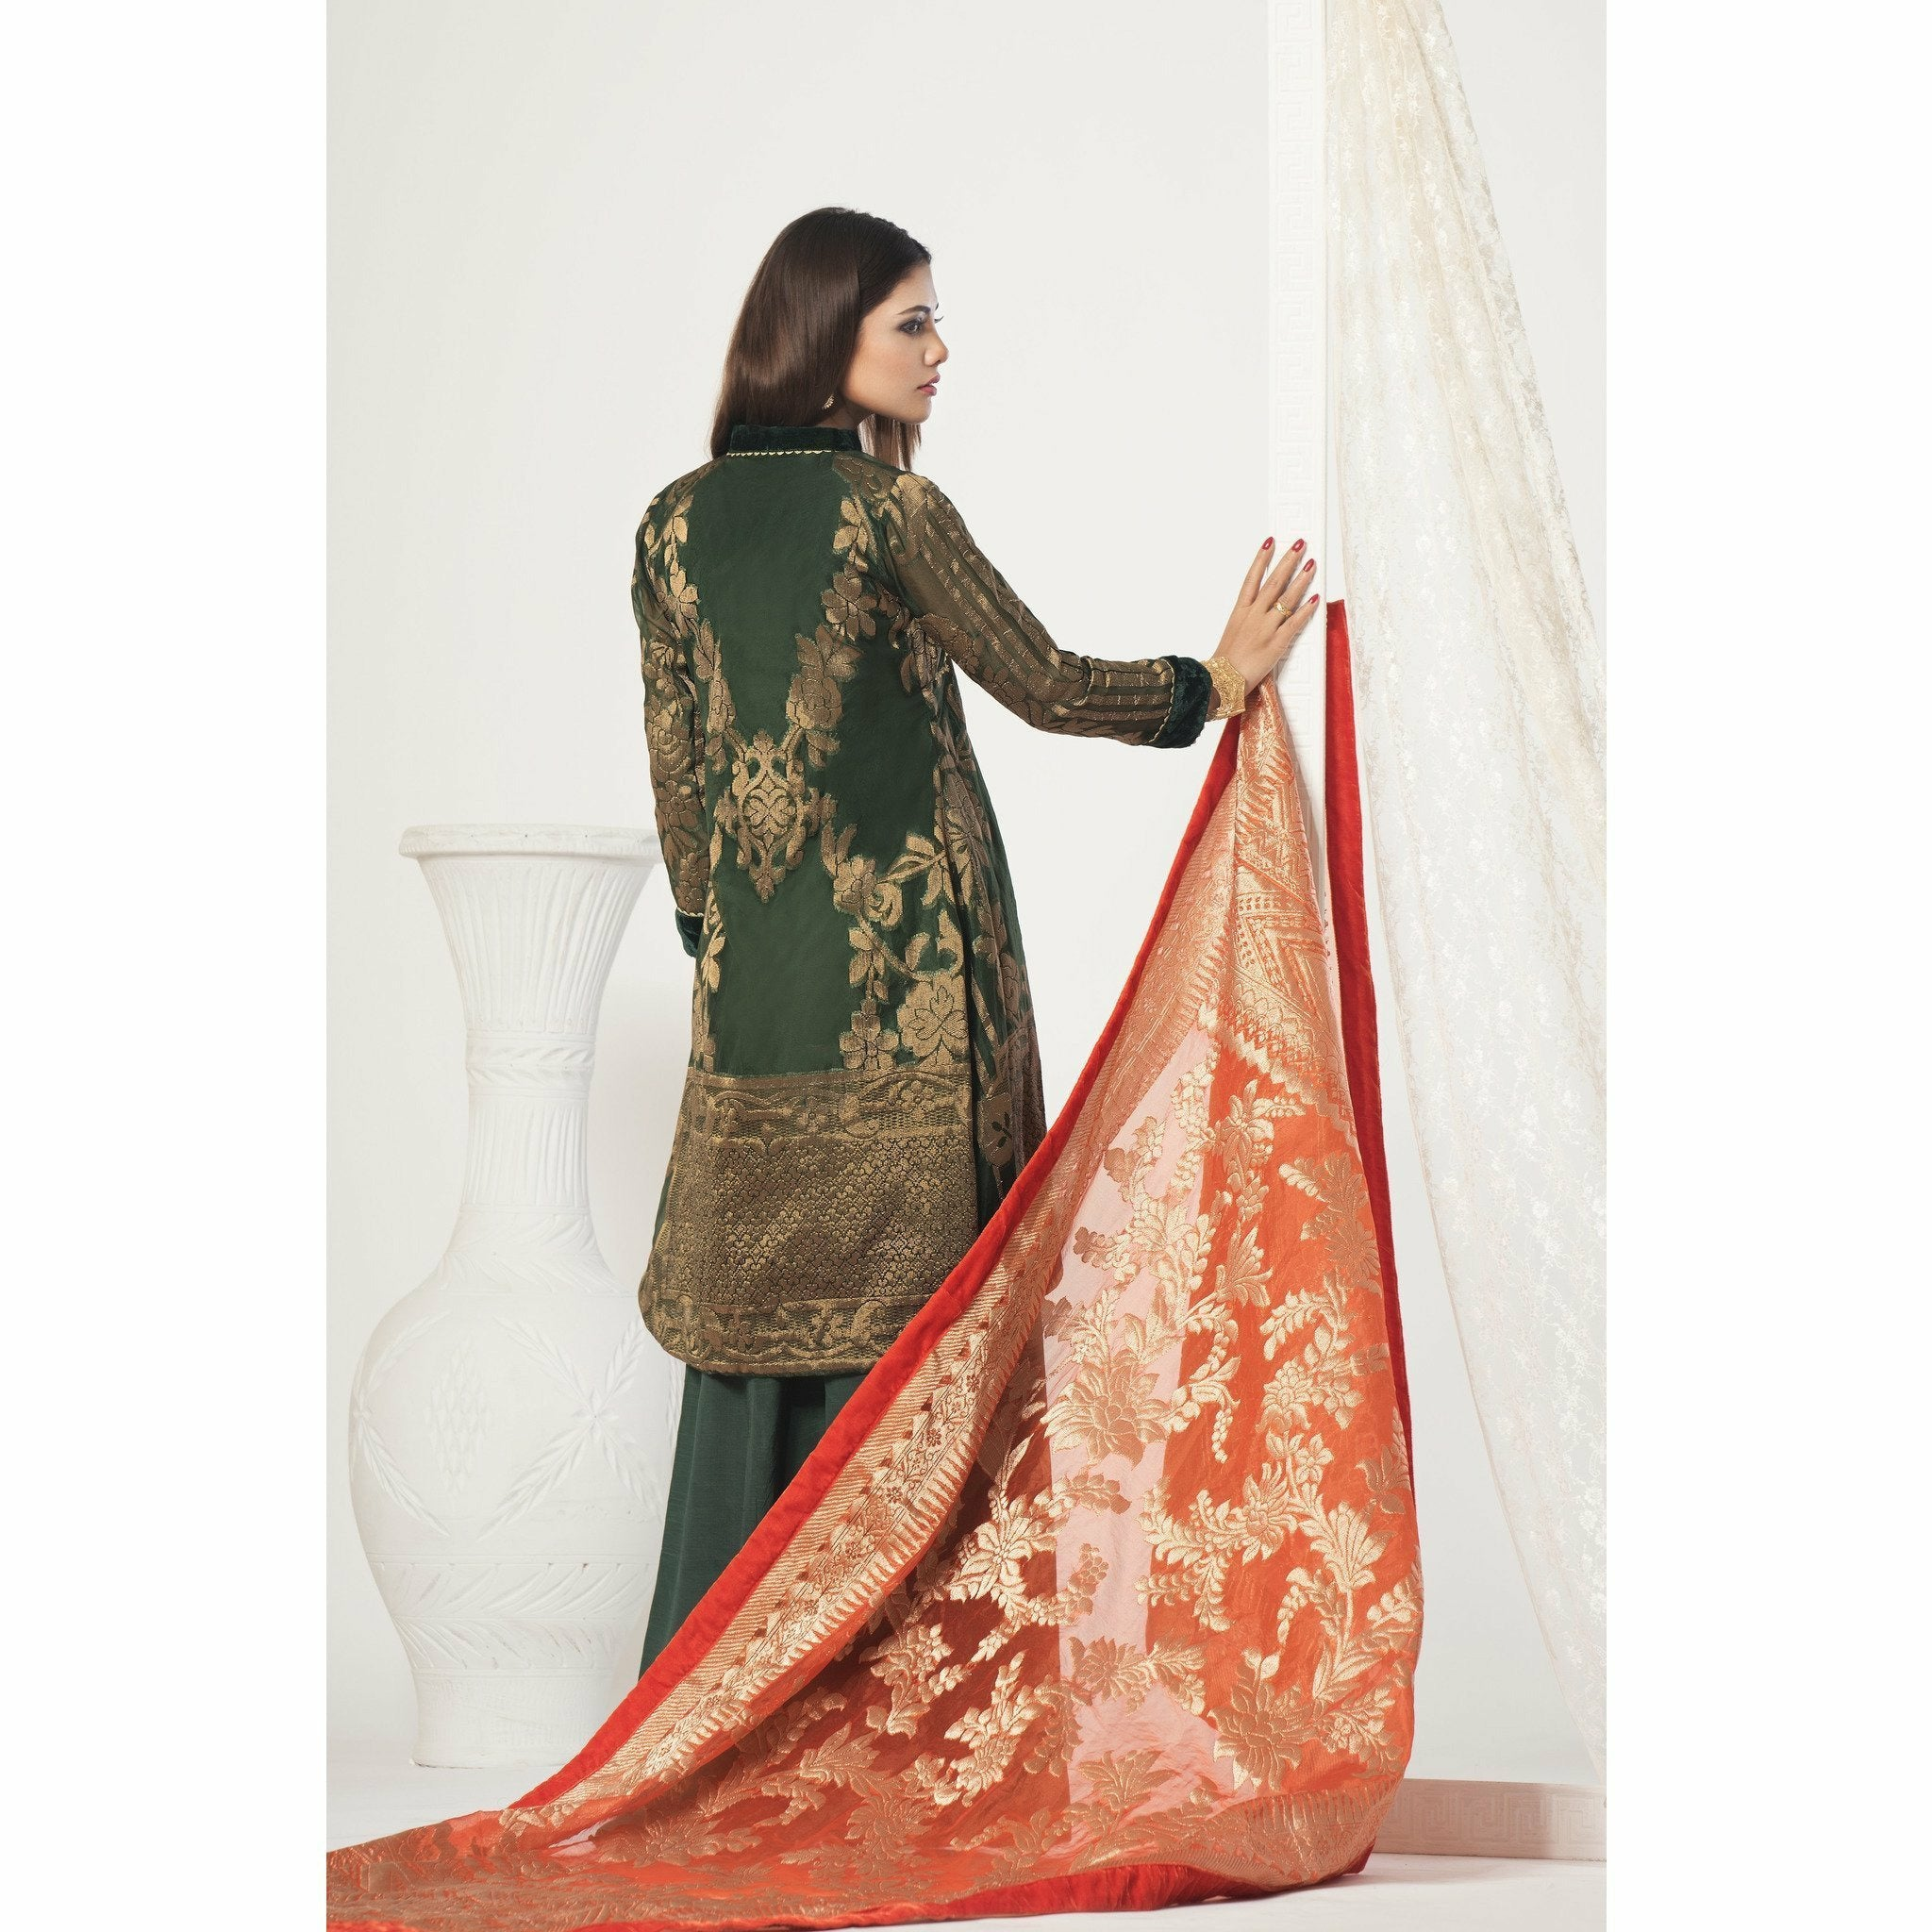 A-Meenah Pakistani Suits UK, pakistani designer suits, salwar kameez uk, ready made pakistani clothes uk, shalwar kameez uk, pakistani clothes uk